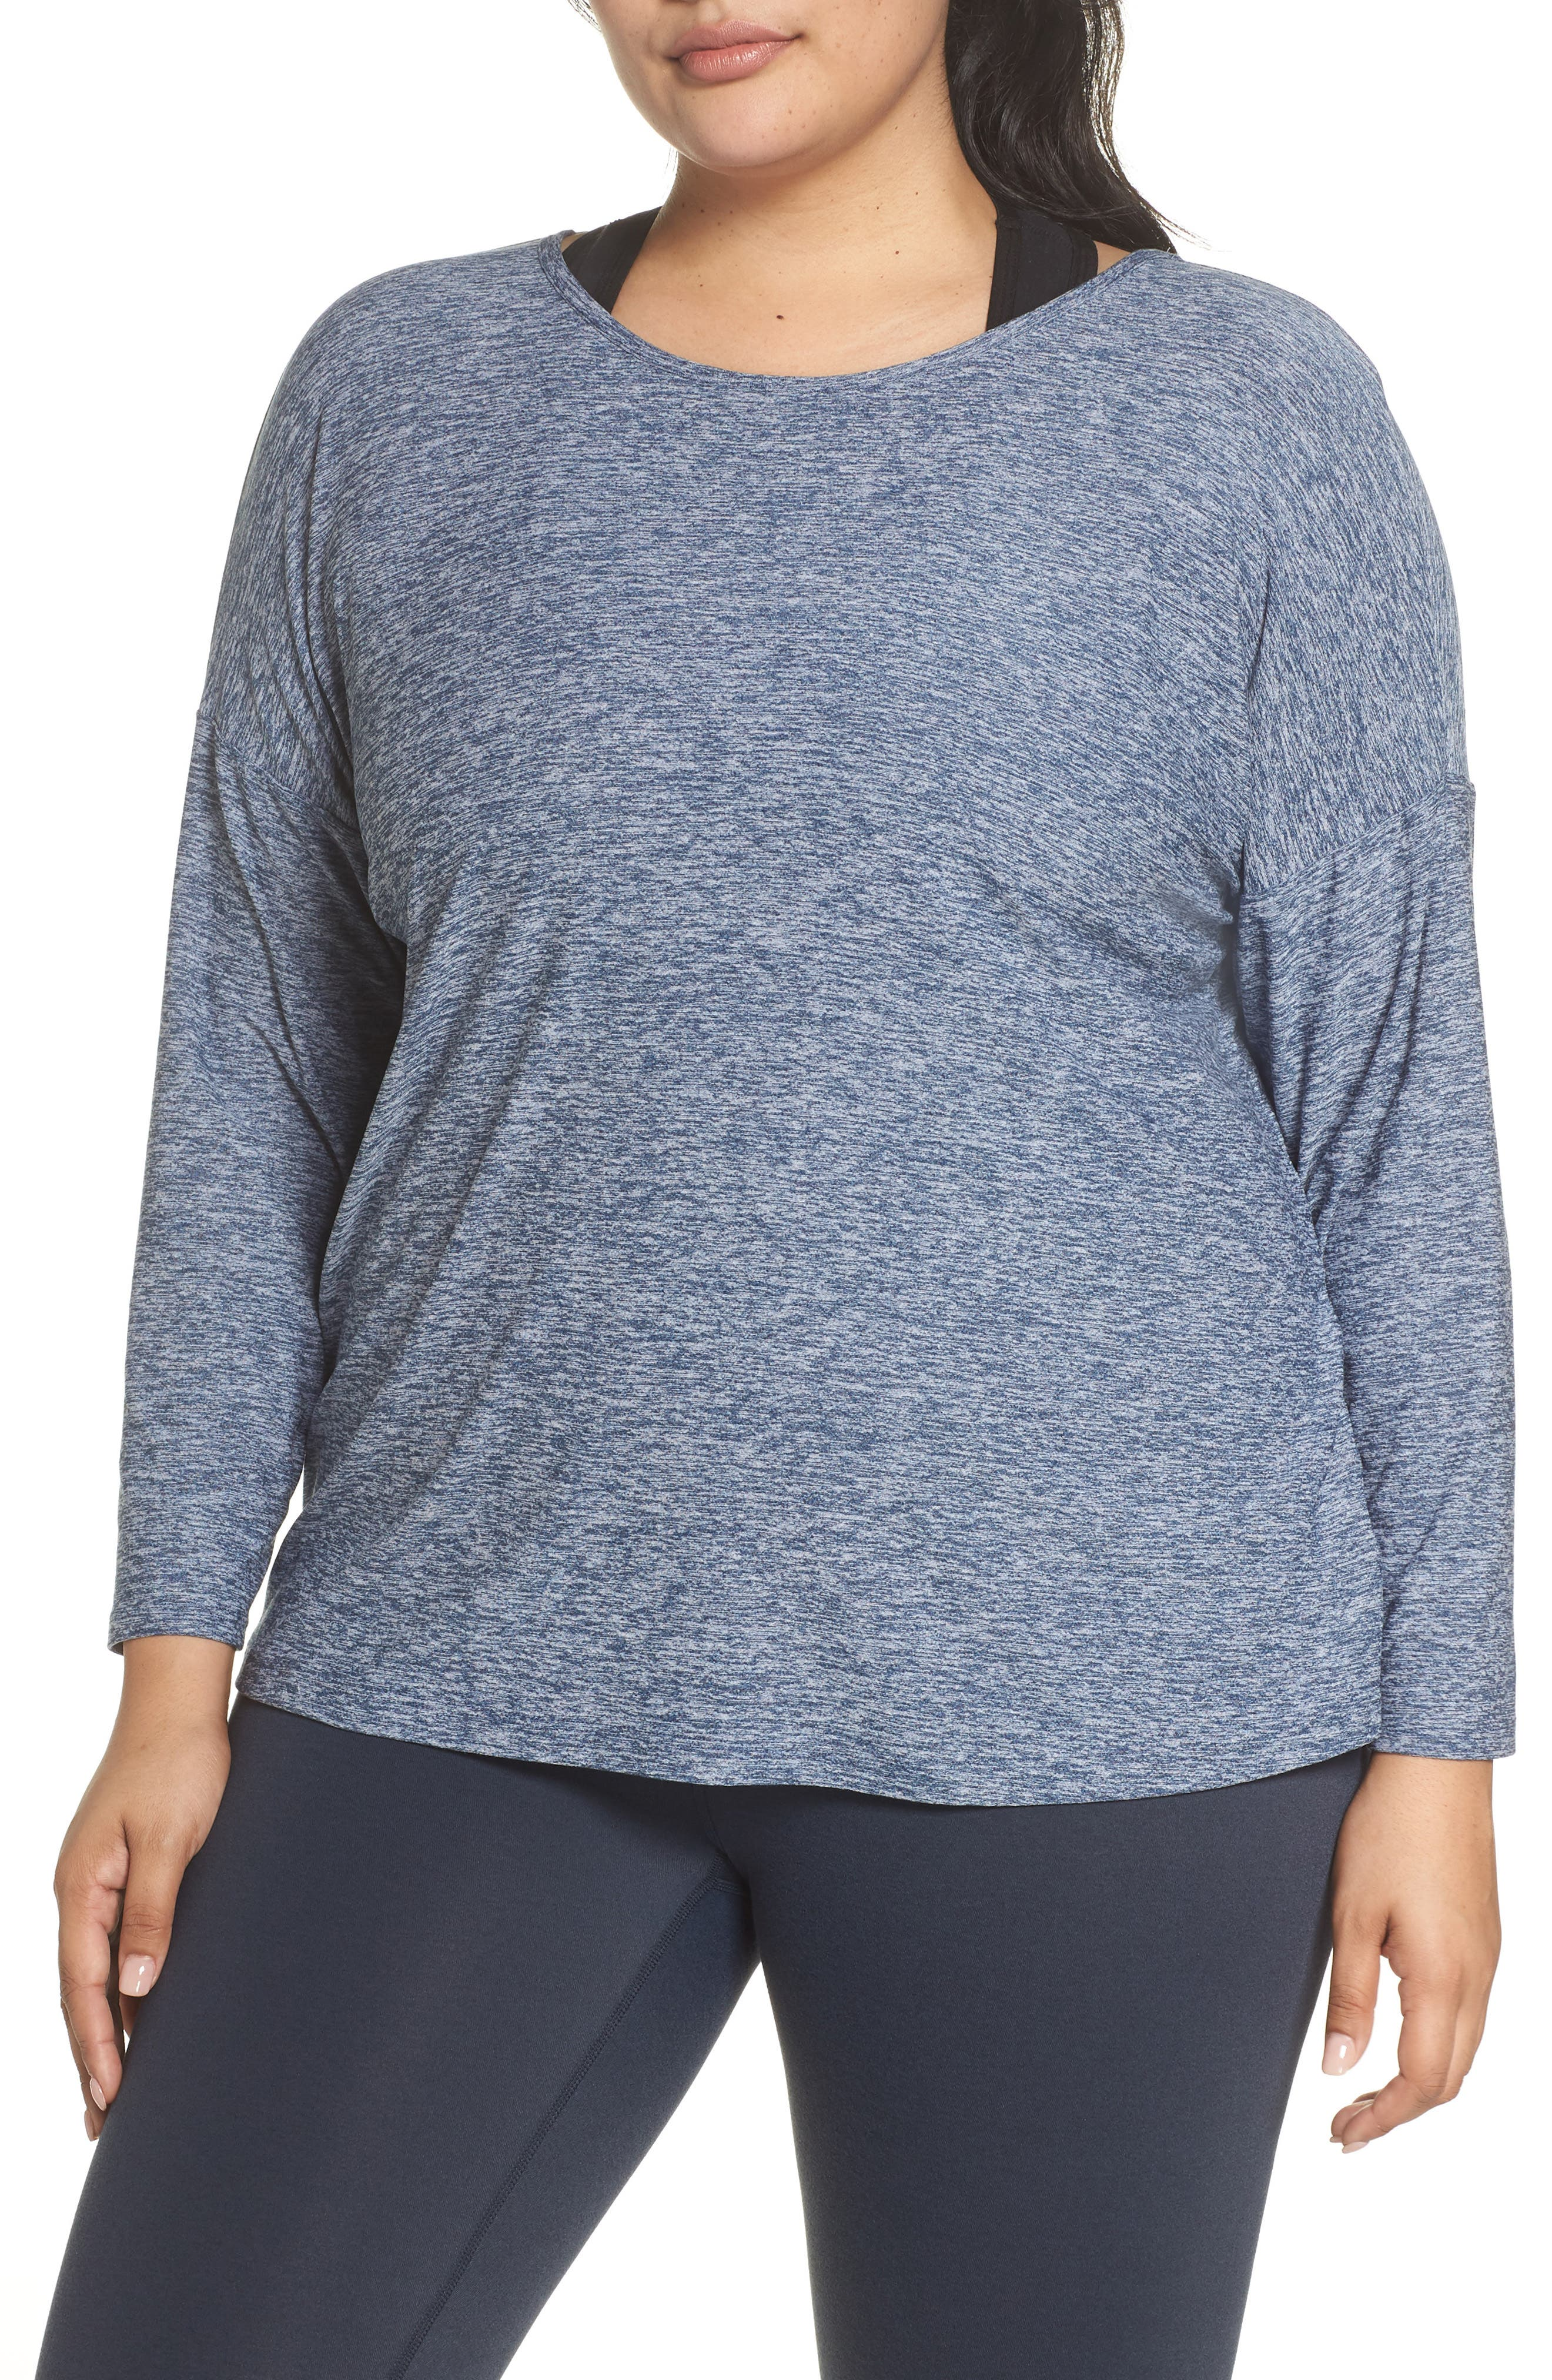 Weekend Traveler Pullover,                         Main,                         color, White/ Outlaw Navy